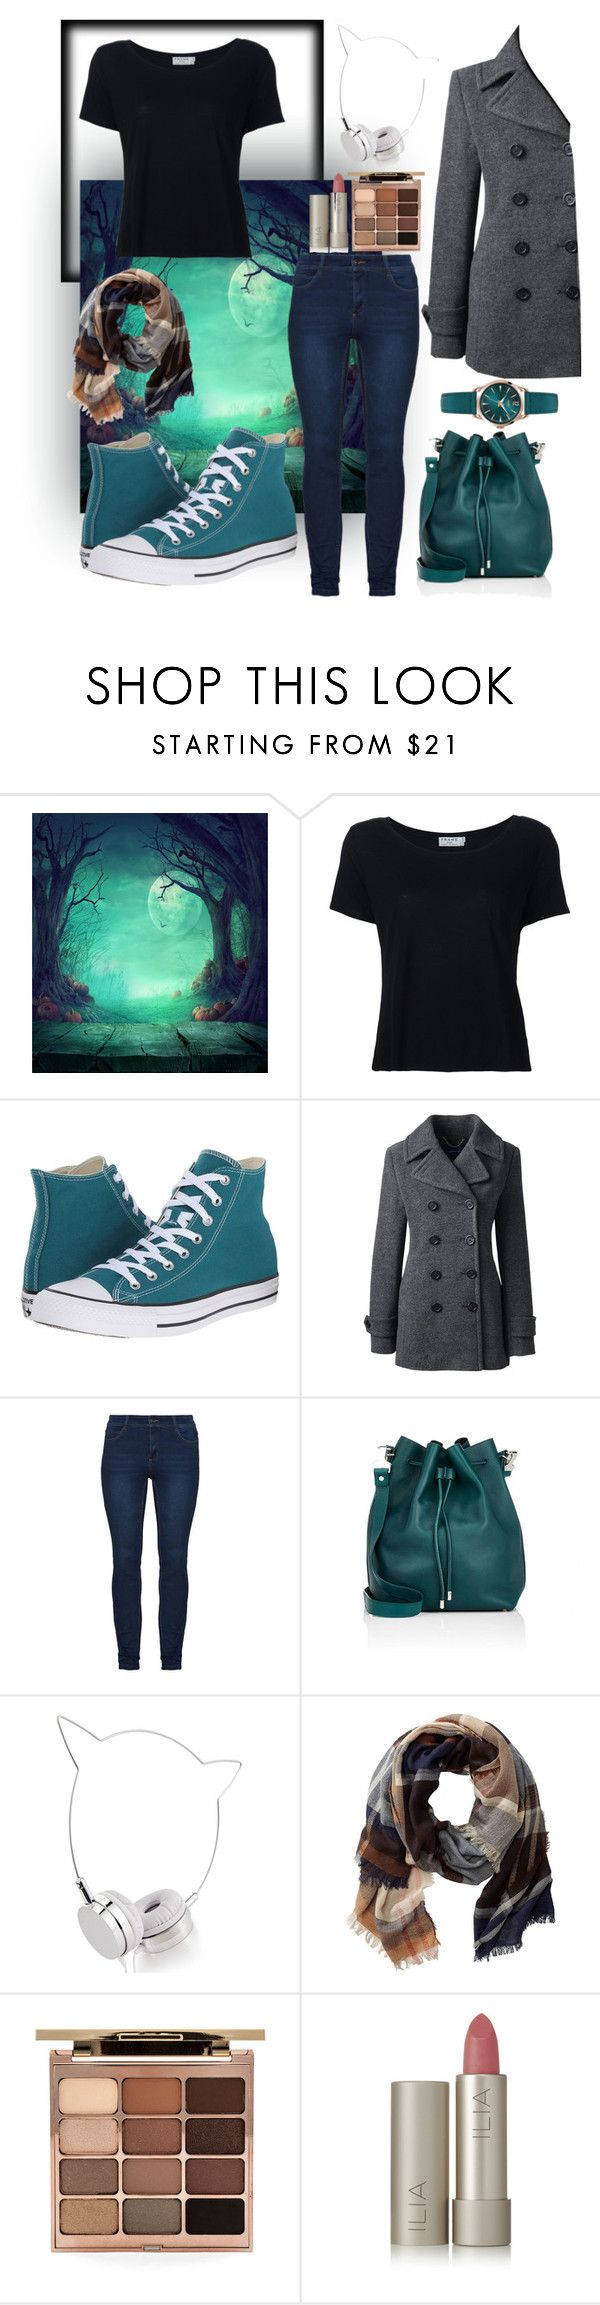 """""""Turquesa"""" by nady26 ❤ liked on Polyvore featuring Frame Denim, Converse, Lands' End, Proenza Schouler, Skinnydip, TravelSmith, Stila, Ilia and Henry London"""